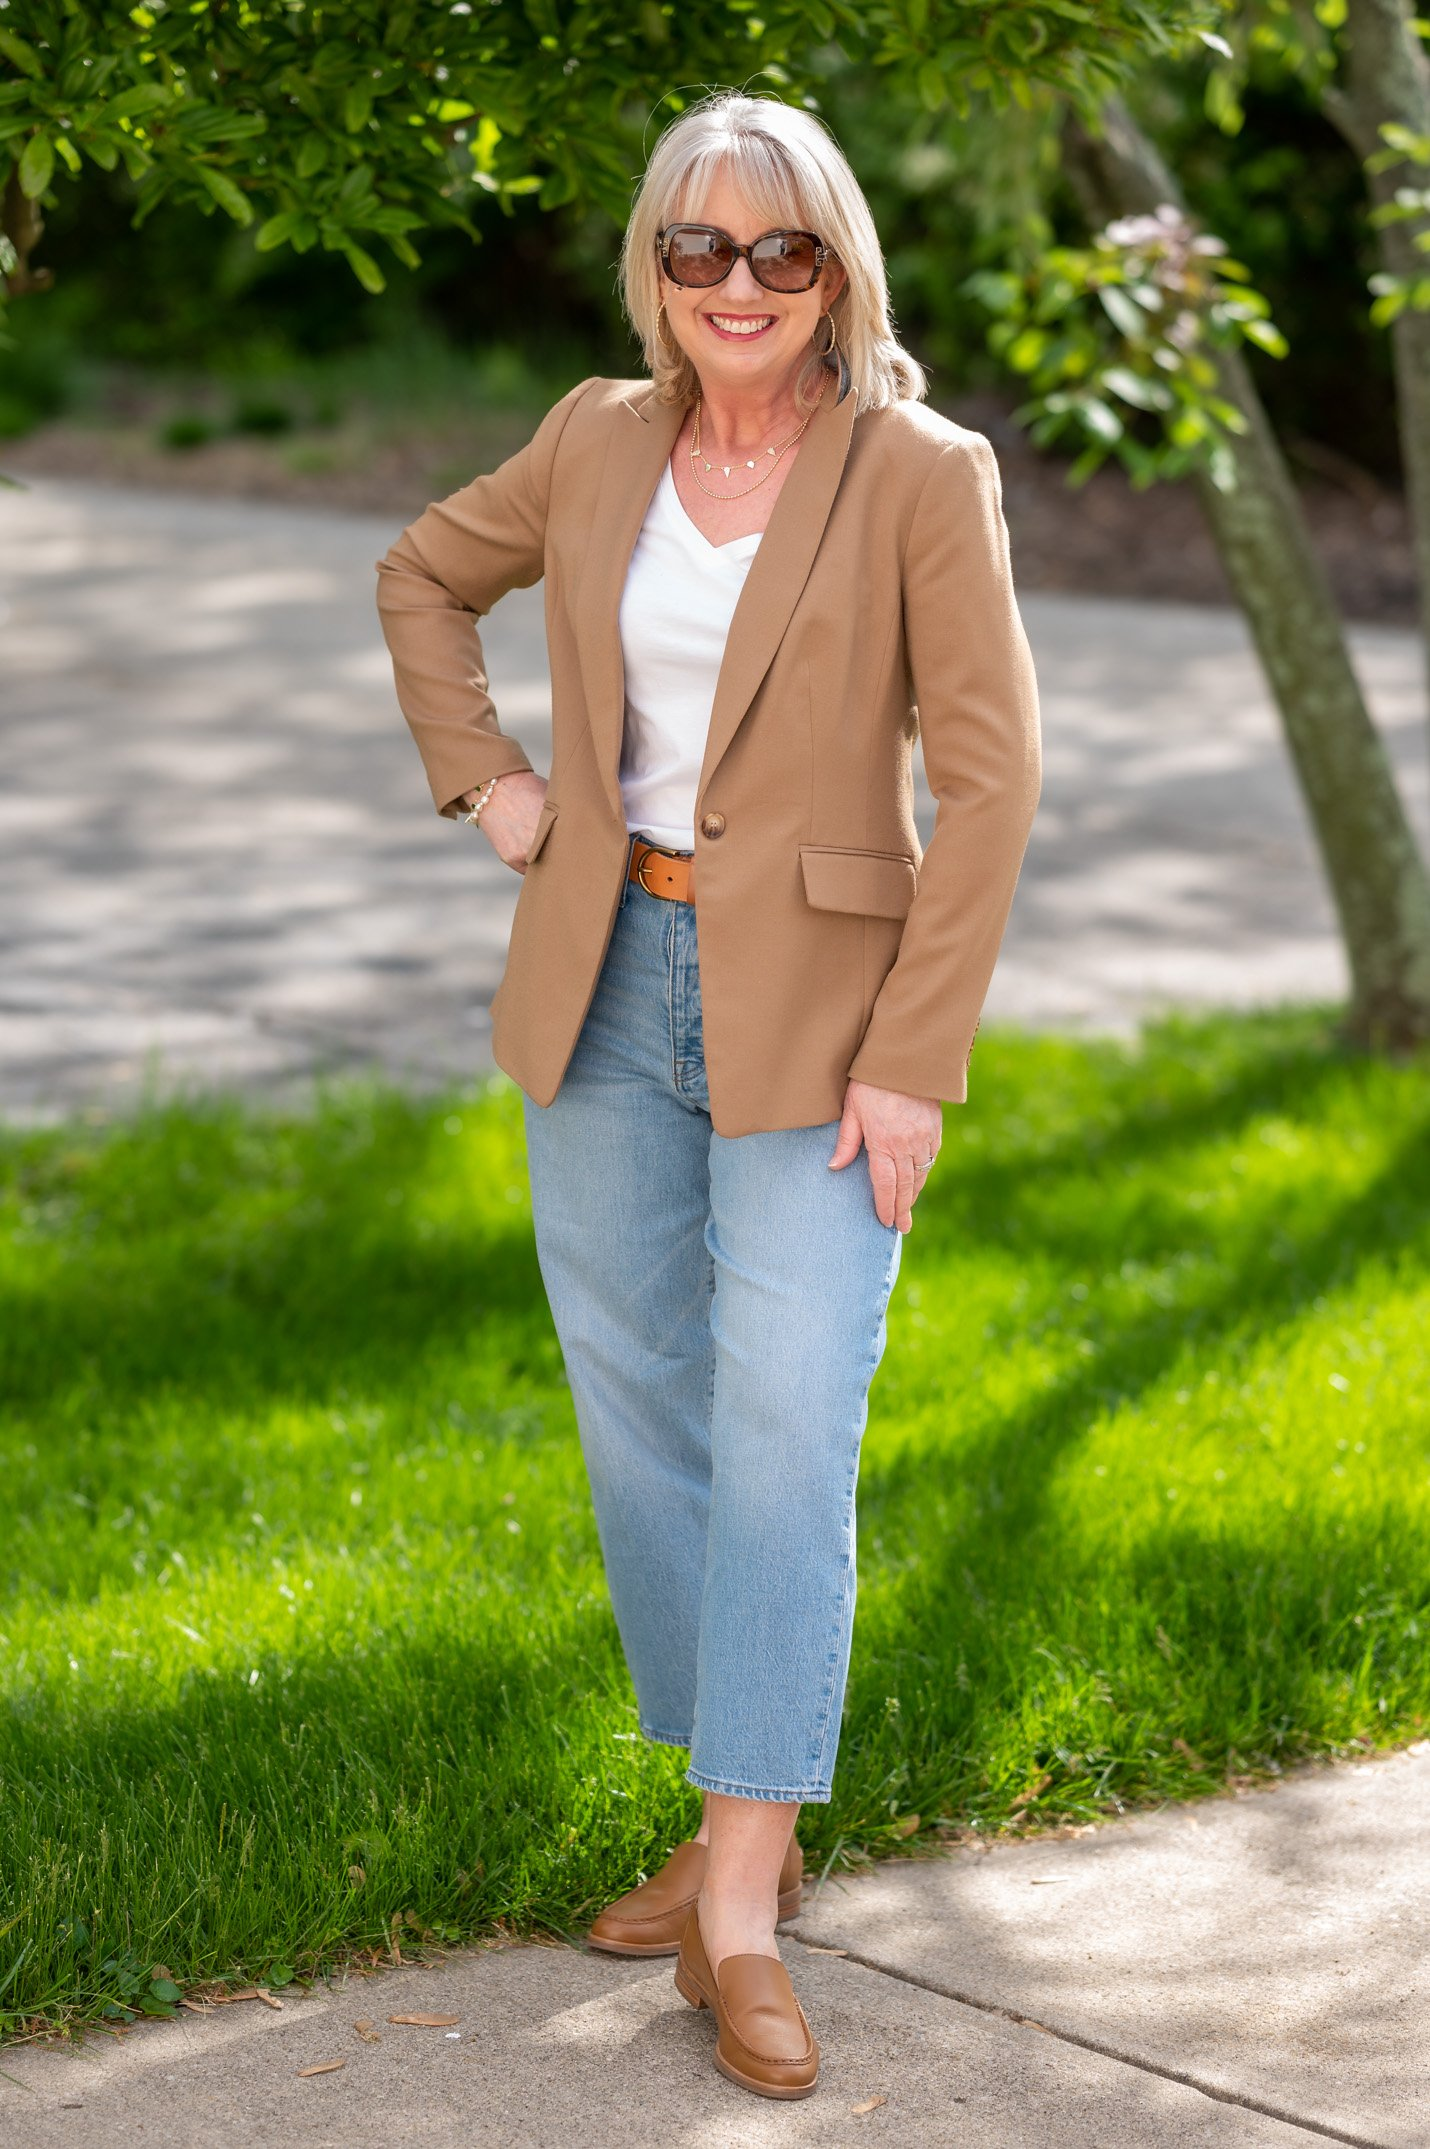 White Tee with Jeans and a Blazer